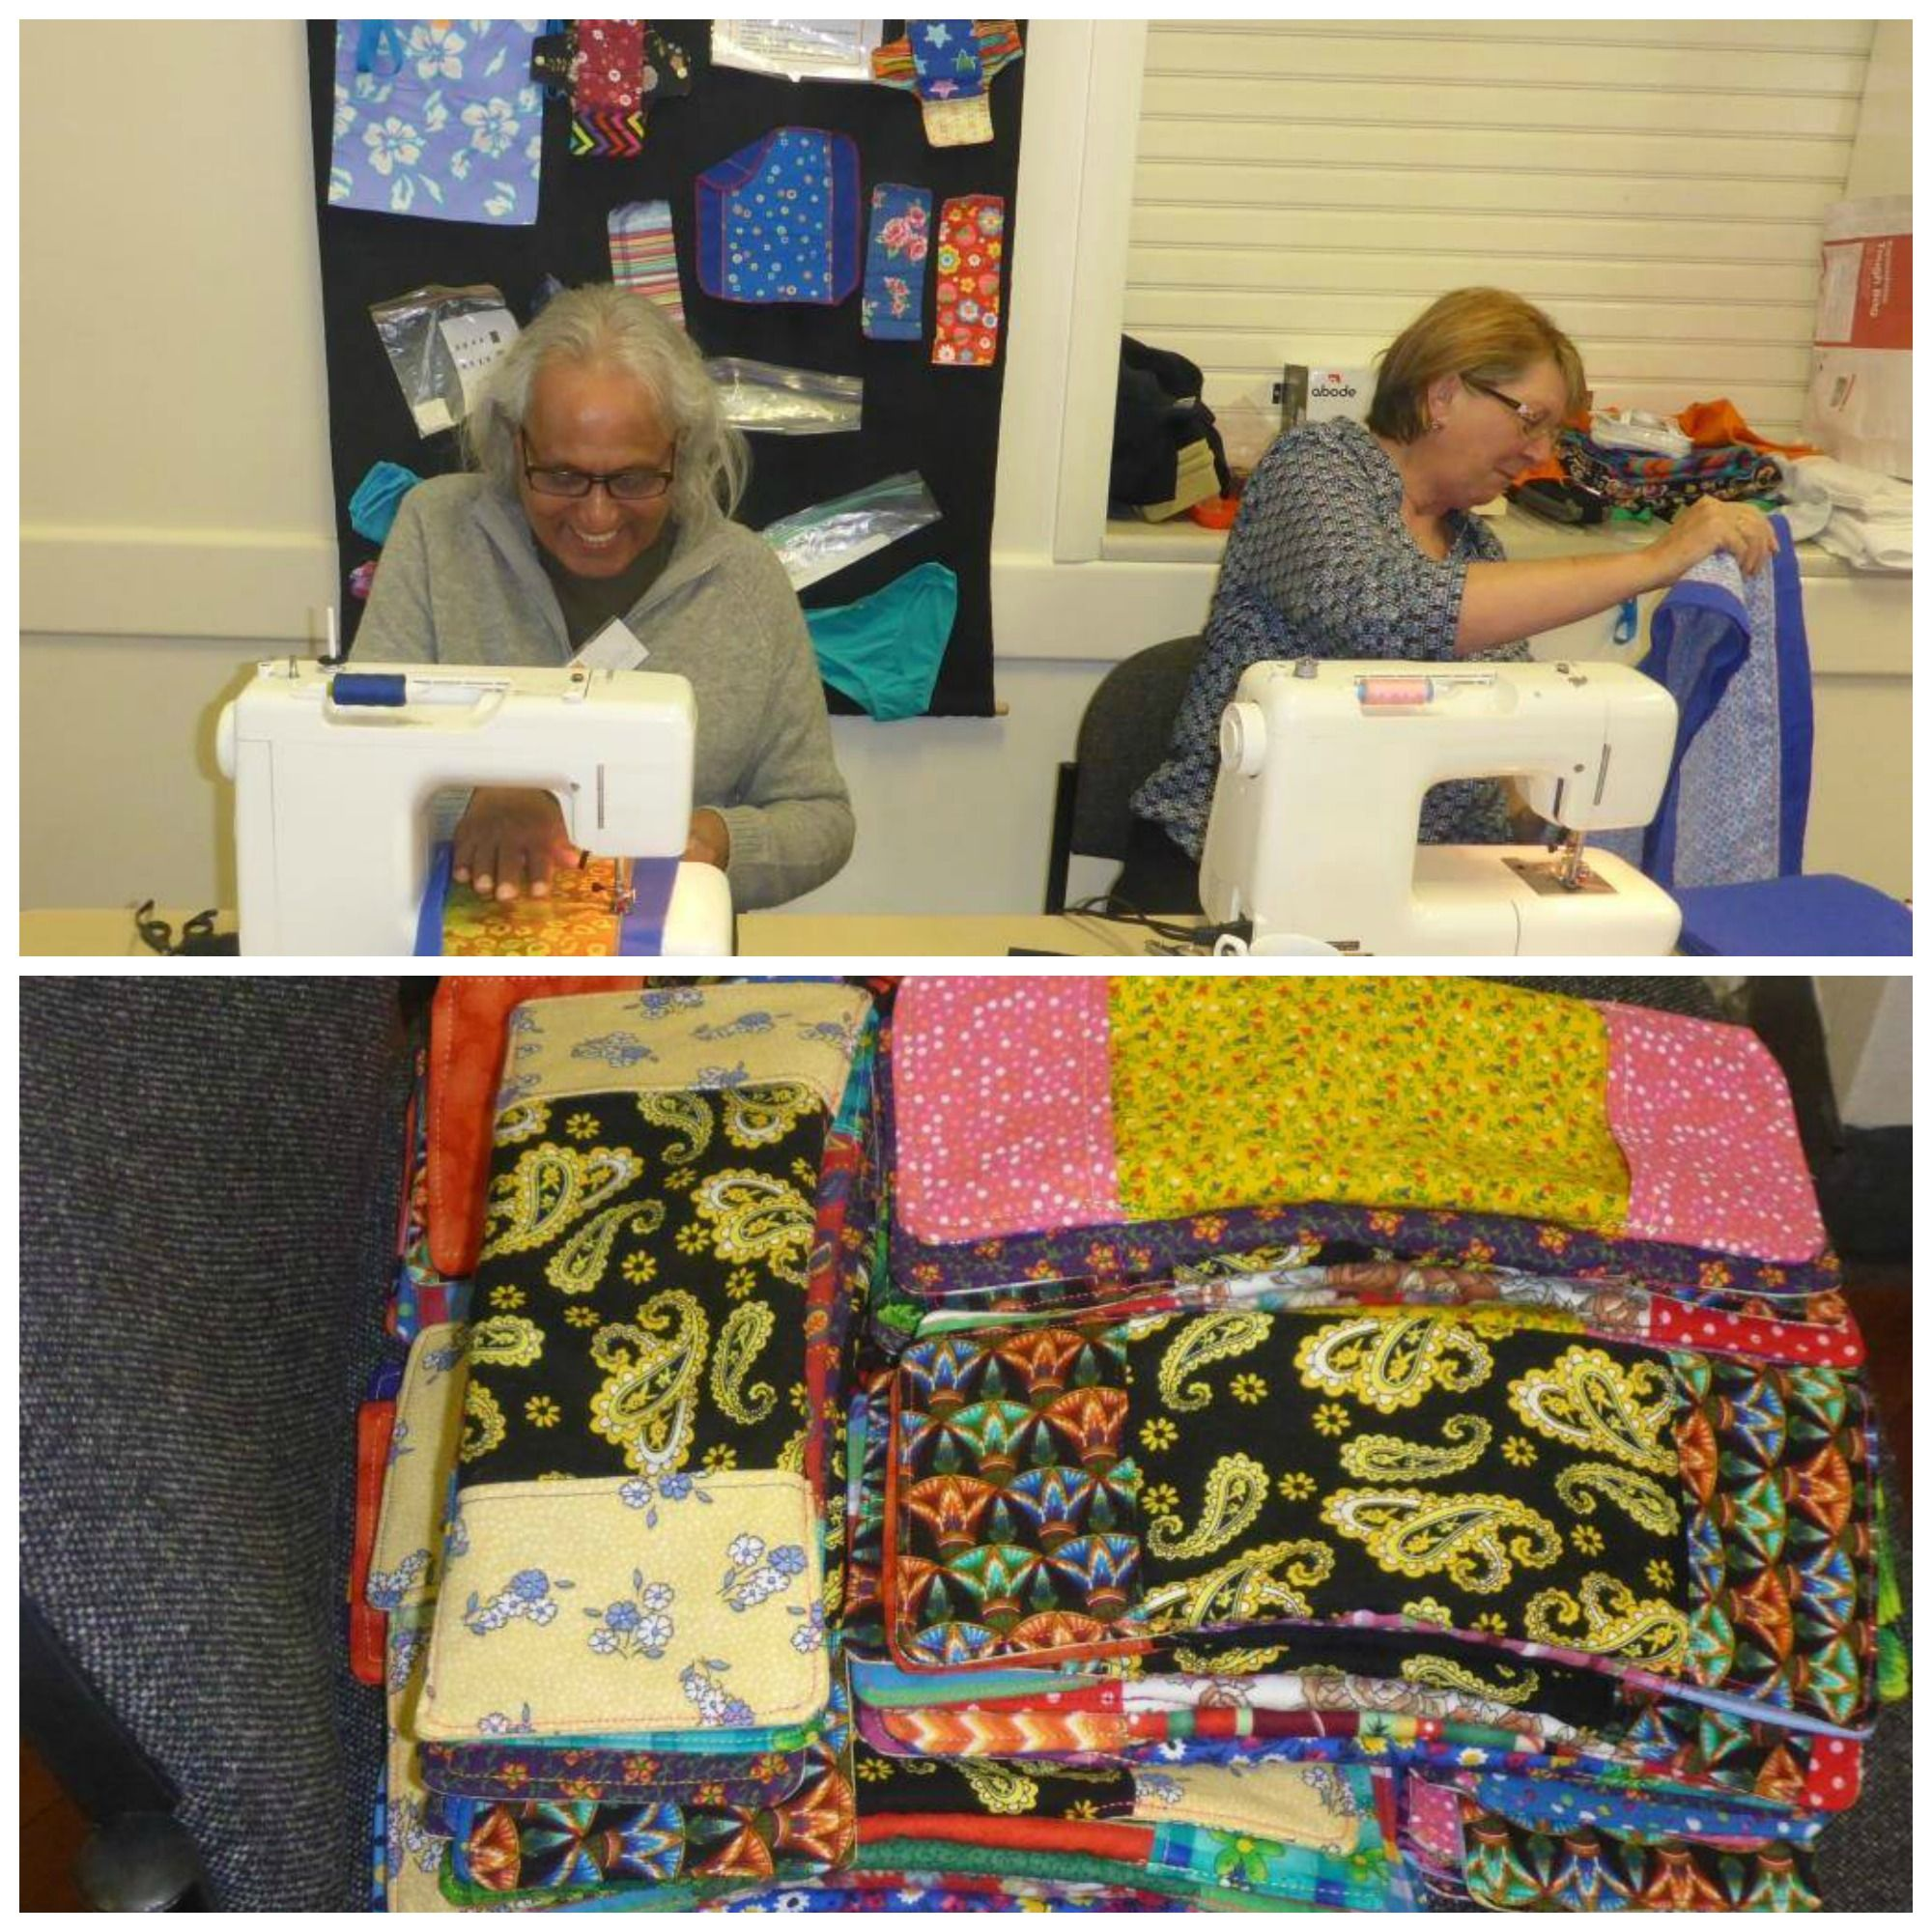 Sewing Day at Reynella Community Centre was a success! A number of volunteers - including members of the Unley Rotary Club - came together to build #DaysforGirls kits. Thank you to the women (and men!) for all of your hard work! And, thank you to #DfG South Australian Chapter for sharing these awesome photos.